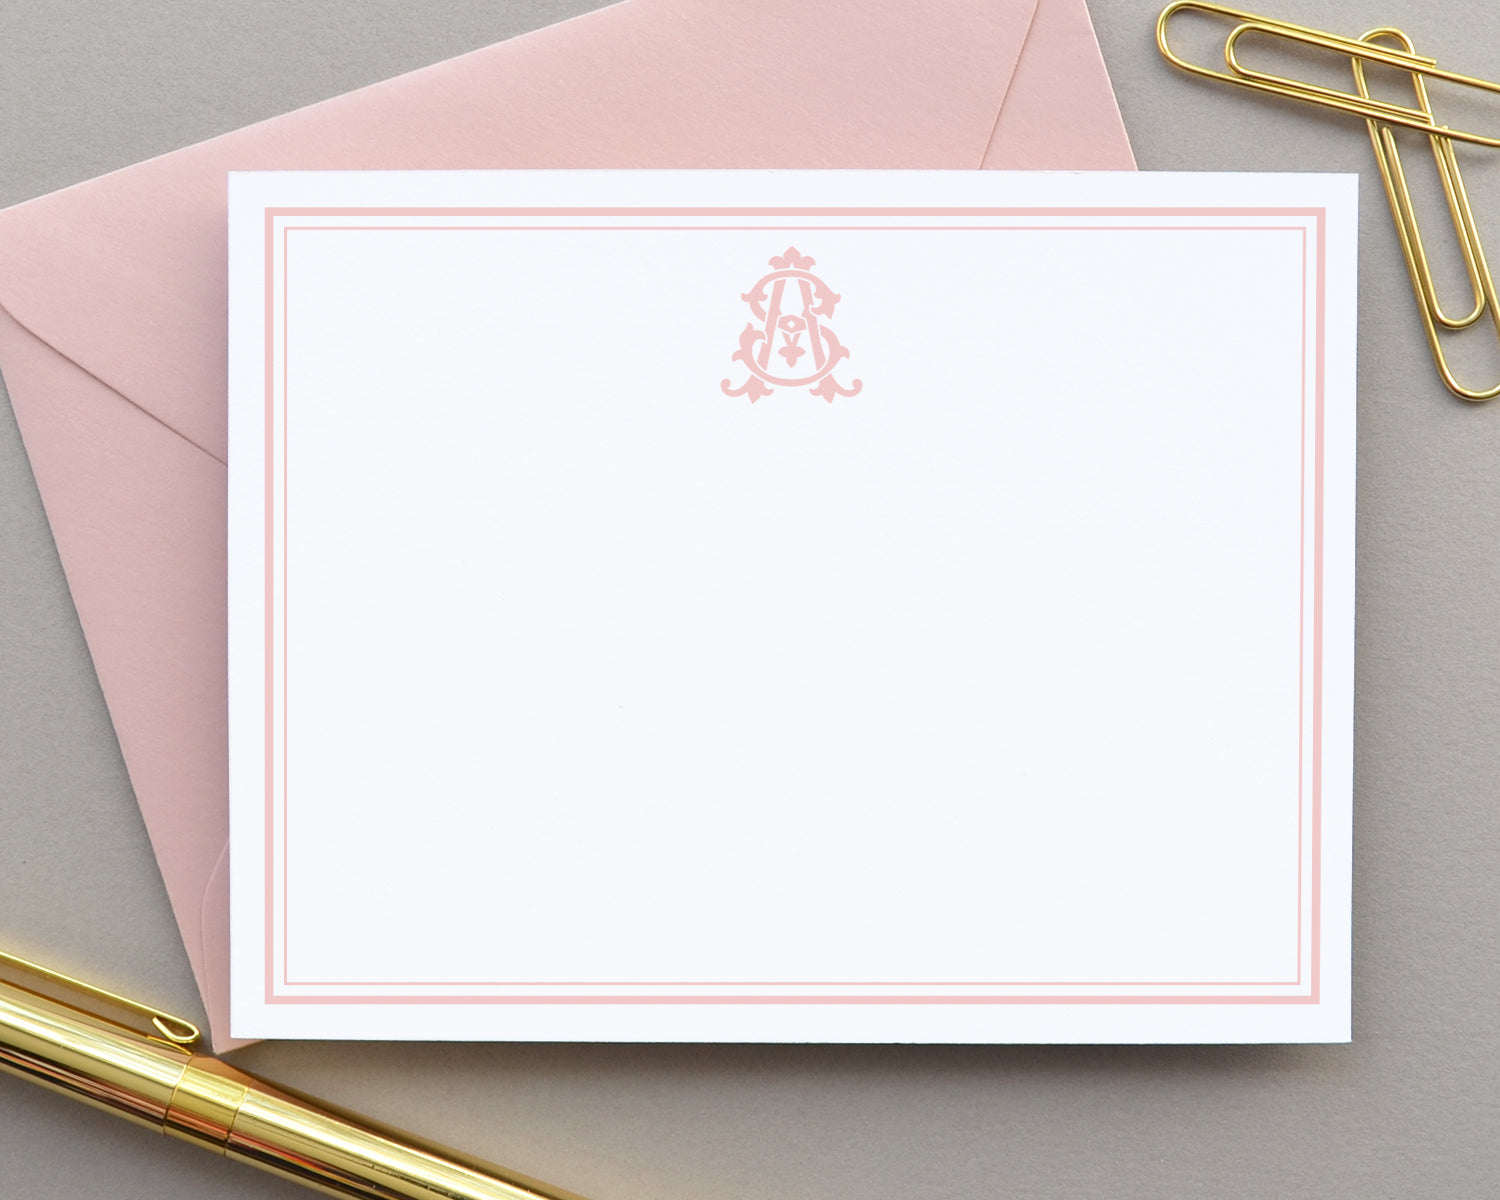 Two Letter Monogrammed Bordered Note Cards